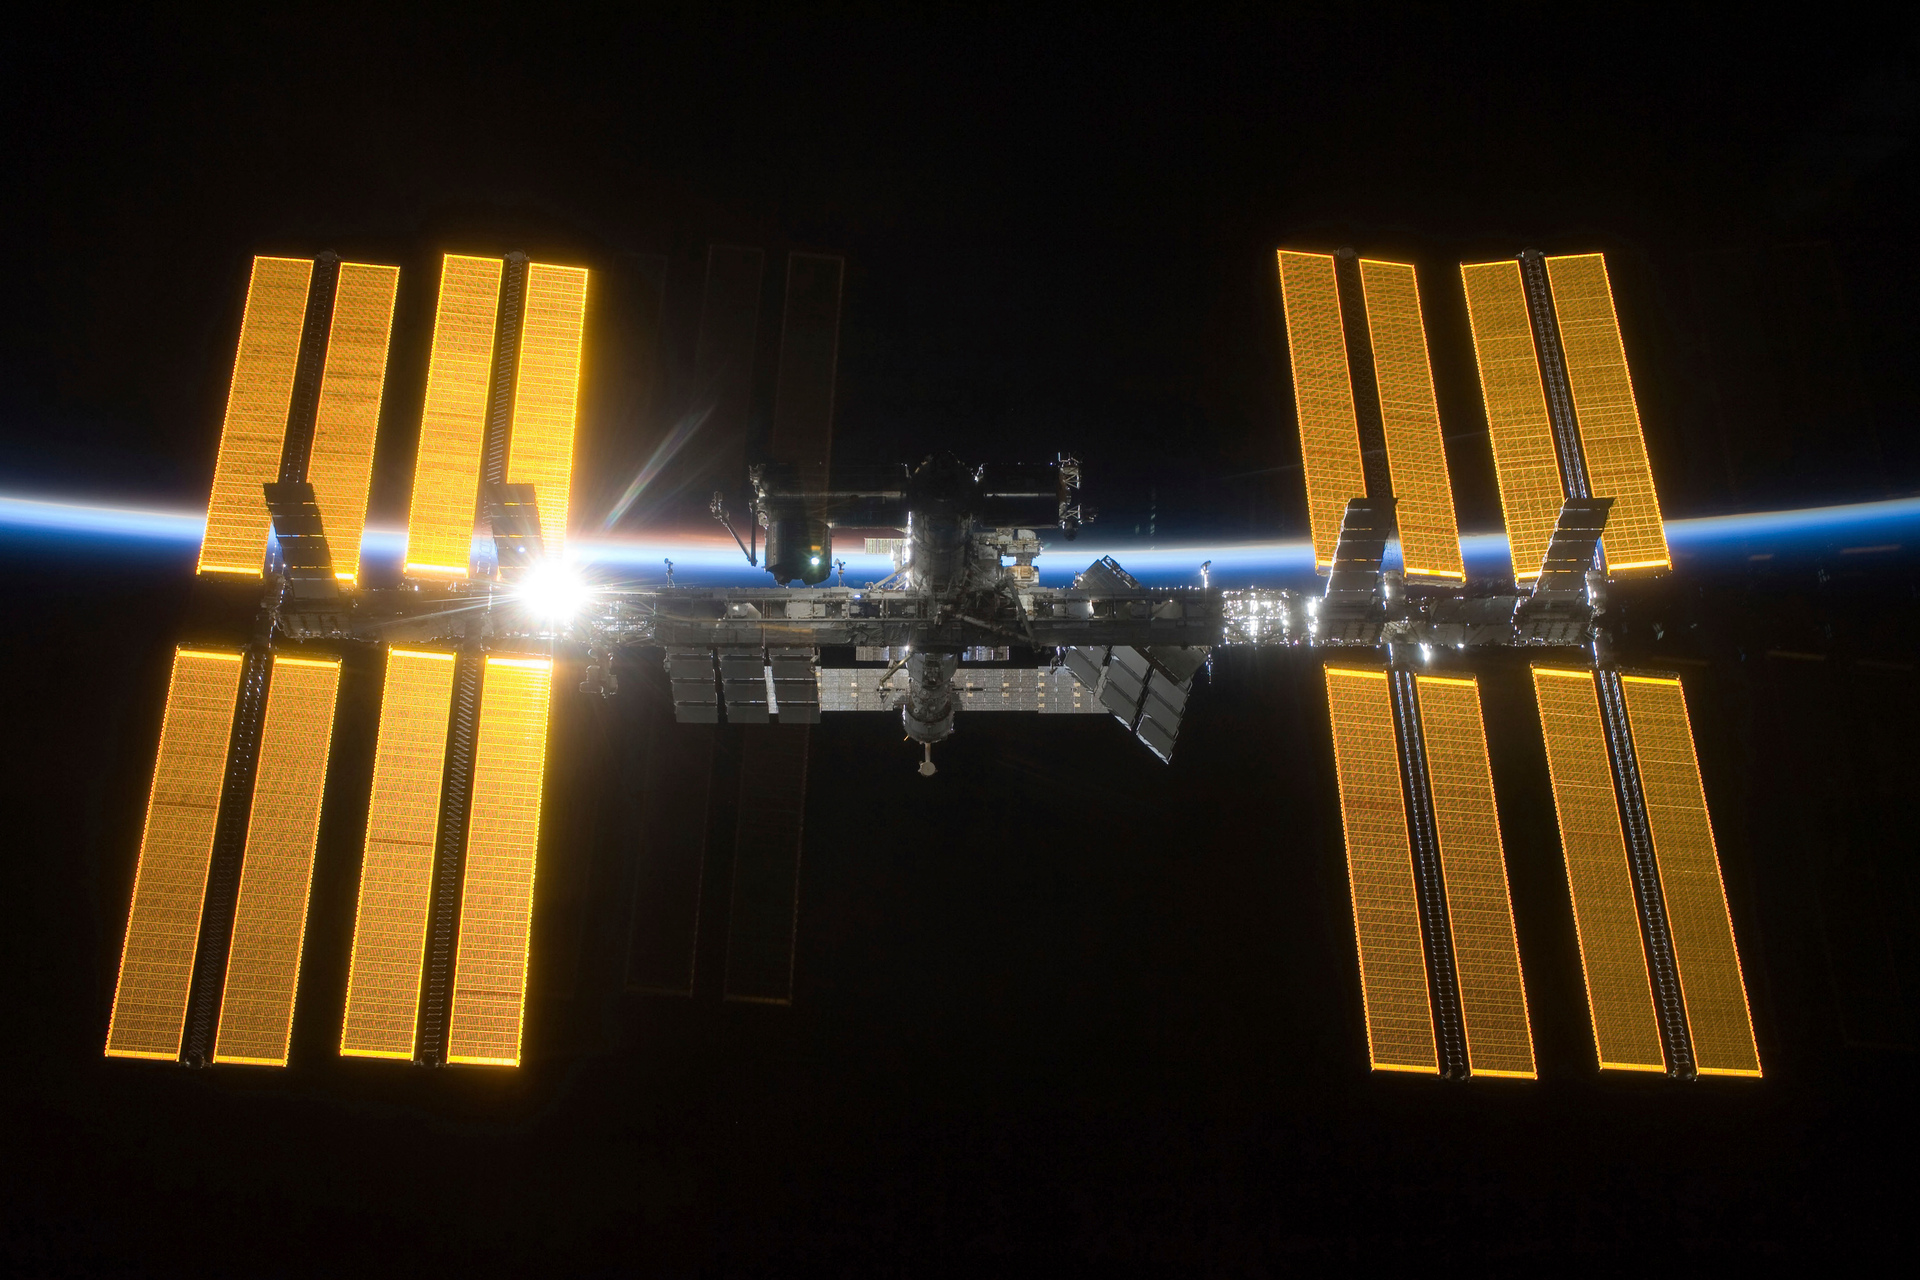 Comment: A near-future tourist's guide to the International Space Station